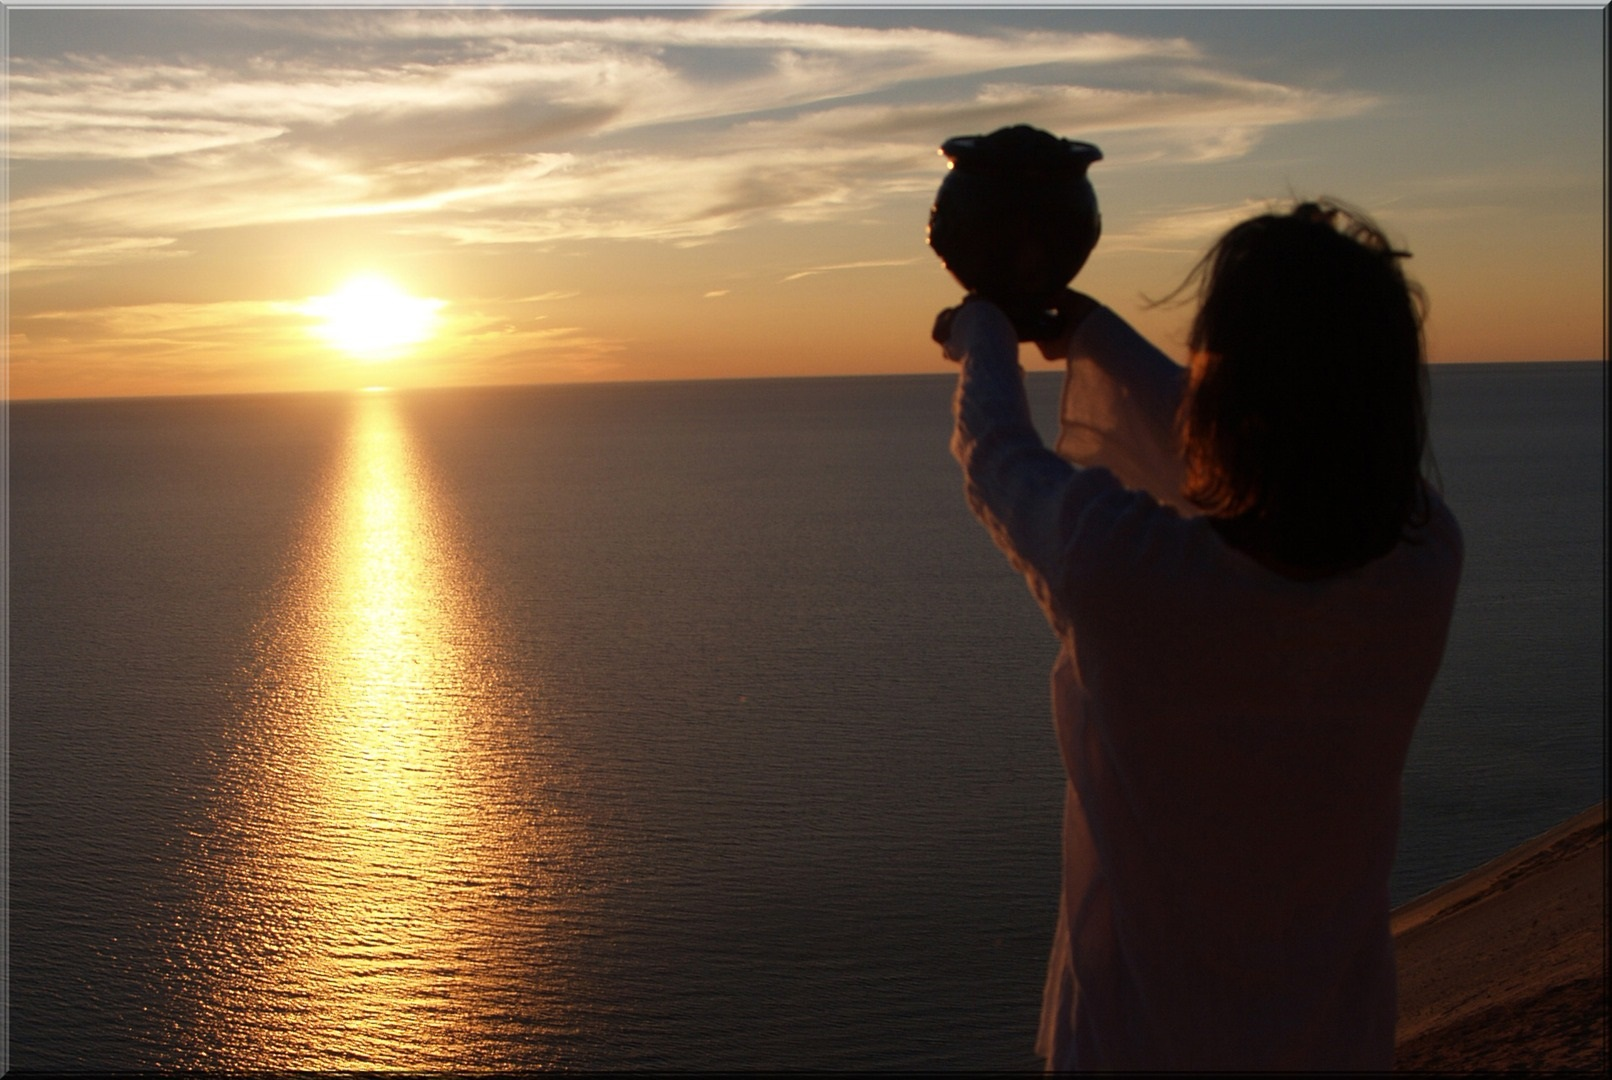 Woman hold final remains of her loved one at sunset